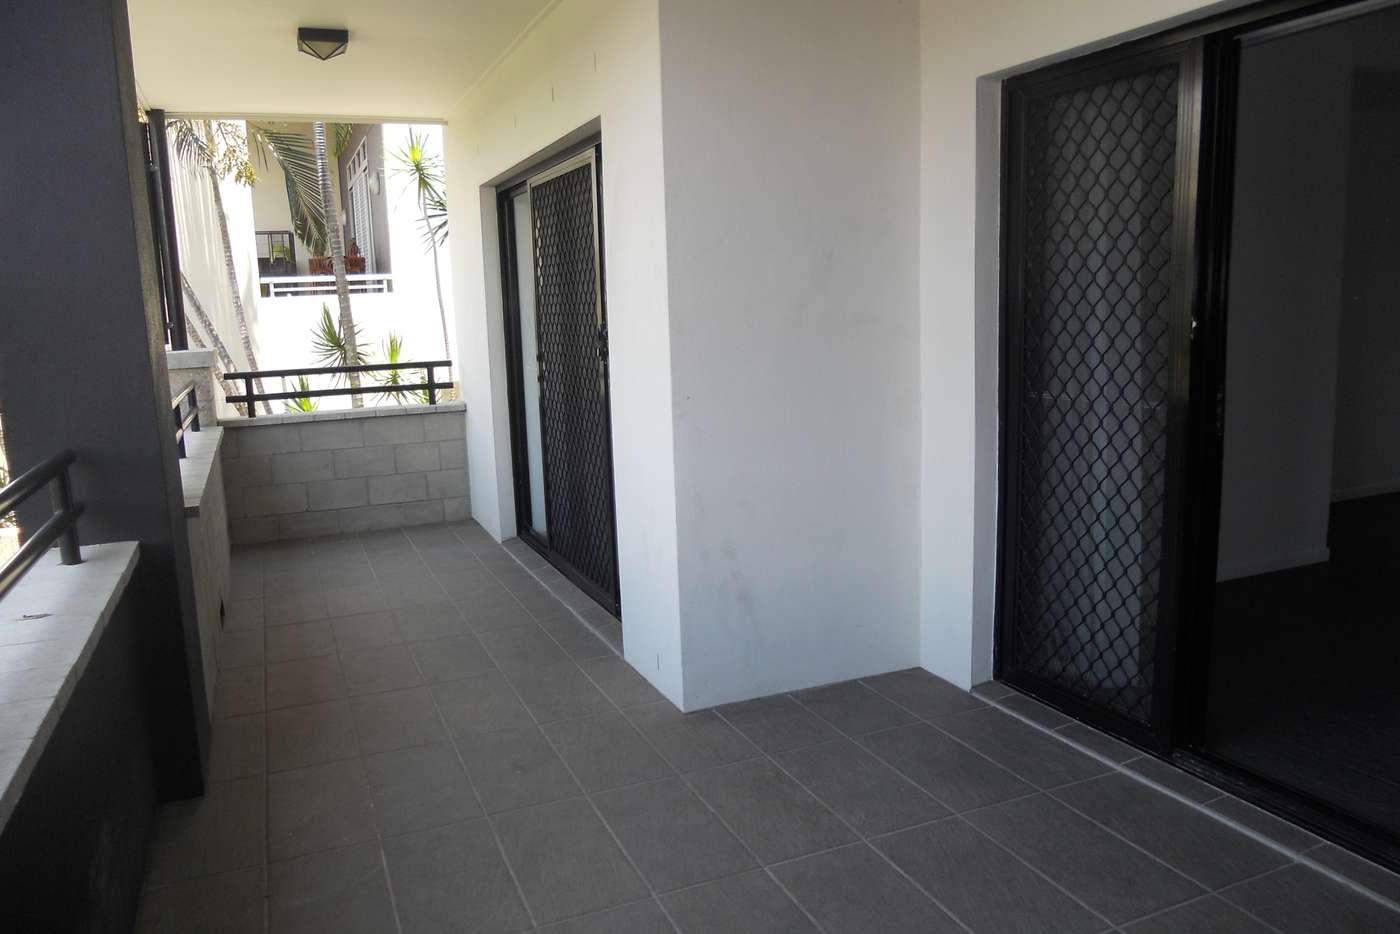 Seventh view of Homely apartment listing, 1/17 Musgrave Road, Indooroopilly QLD 4068